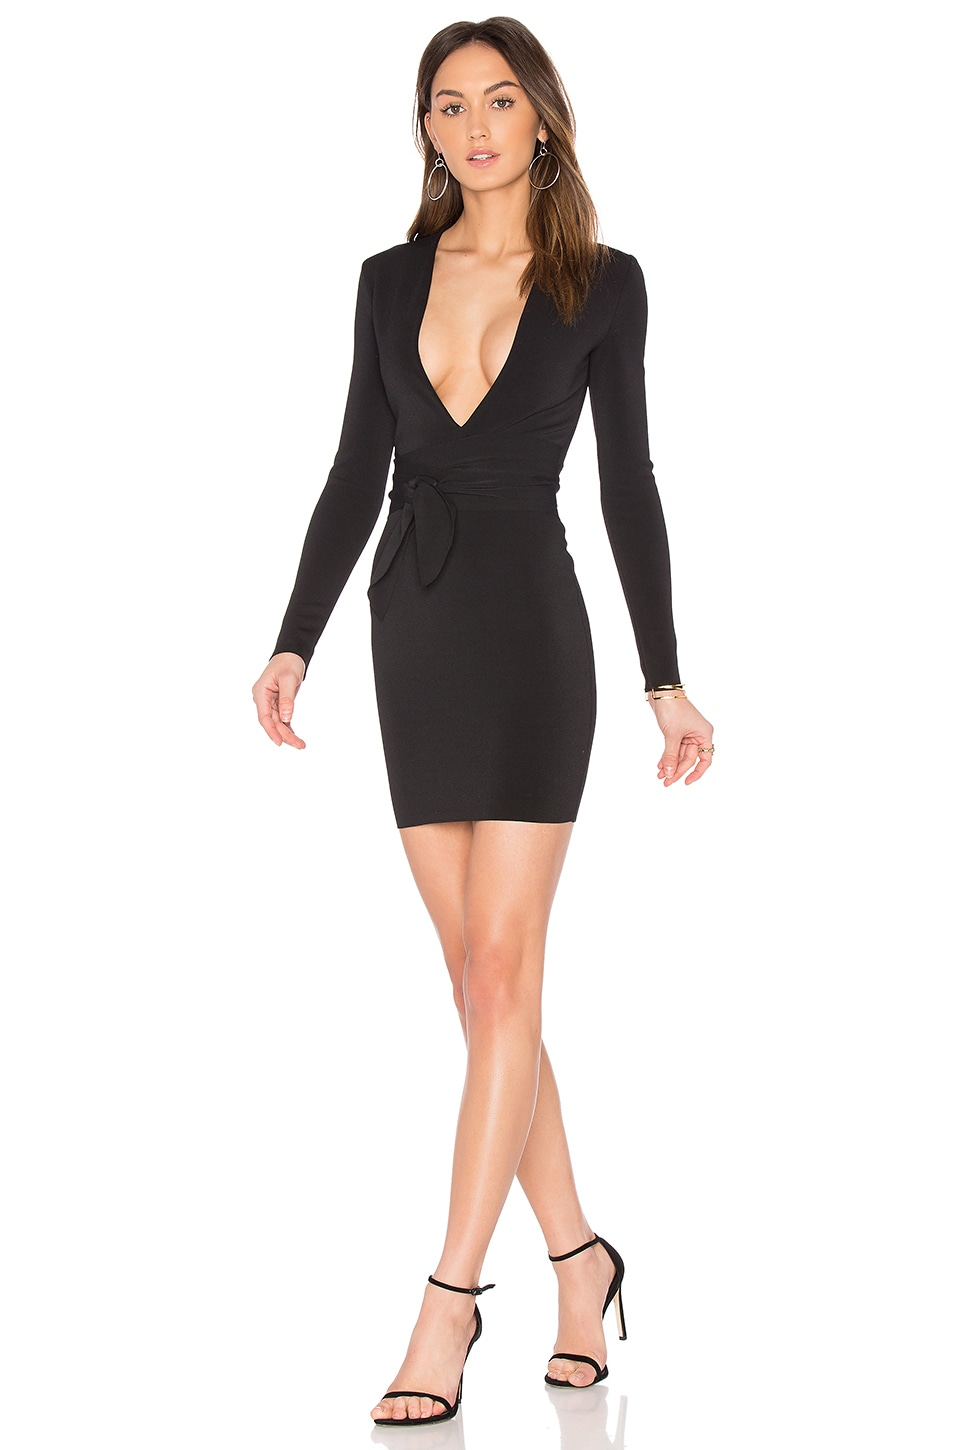 India Rosa Long Sleeve Tie Dress by Bec&Bridge